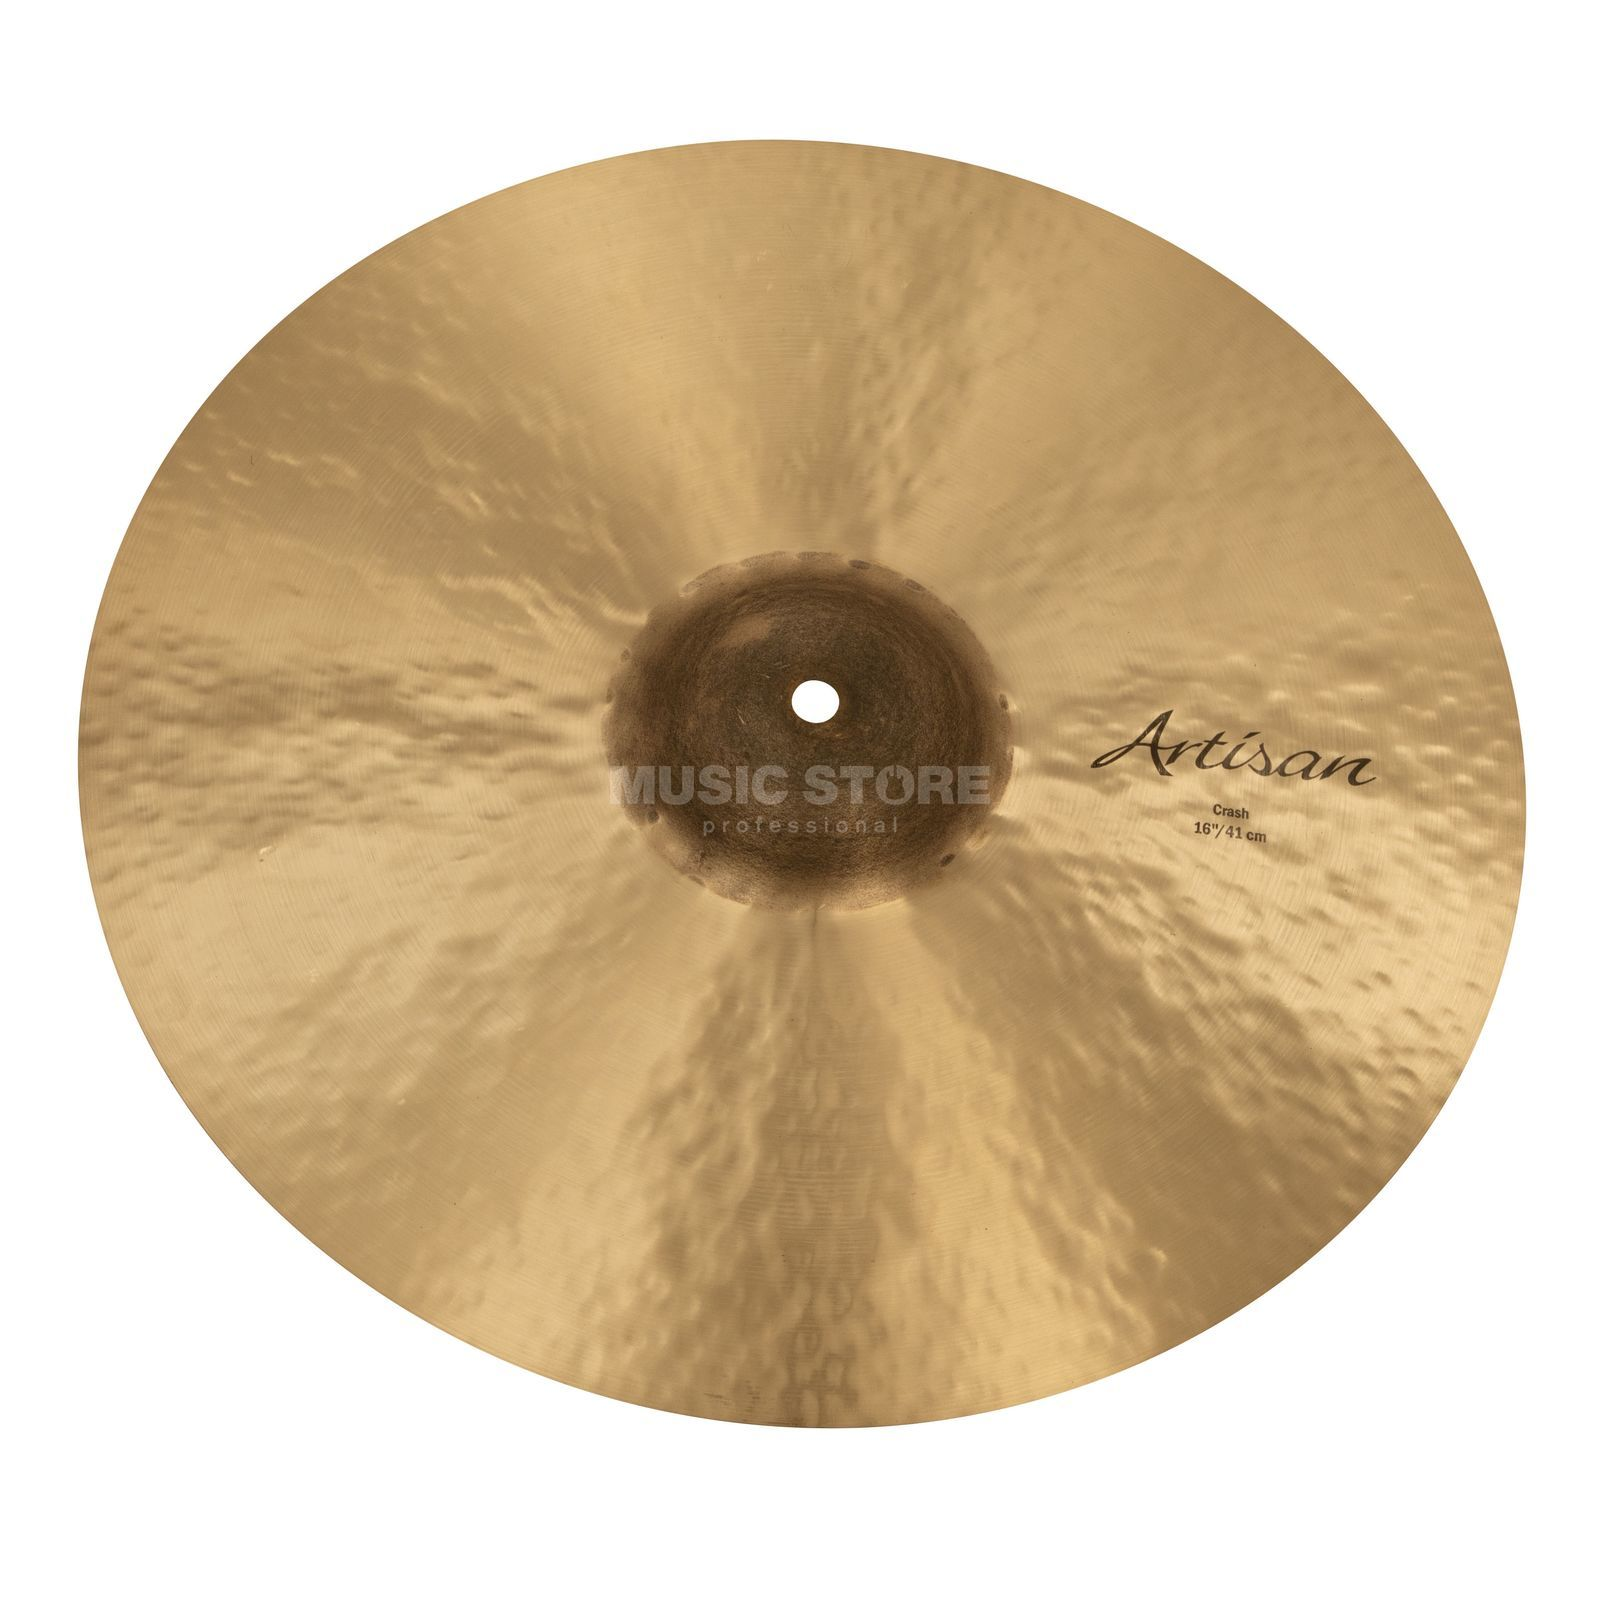 "Sabian Artisan Thin Crash 16"", Natural Finish Produktbillede"